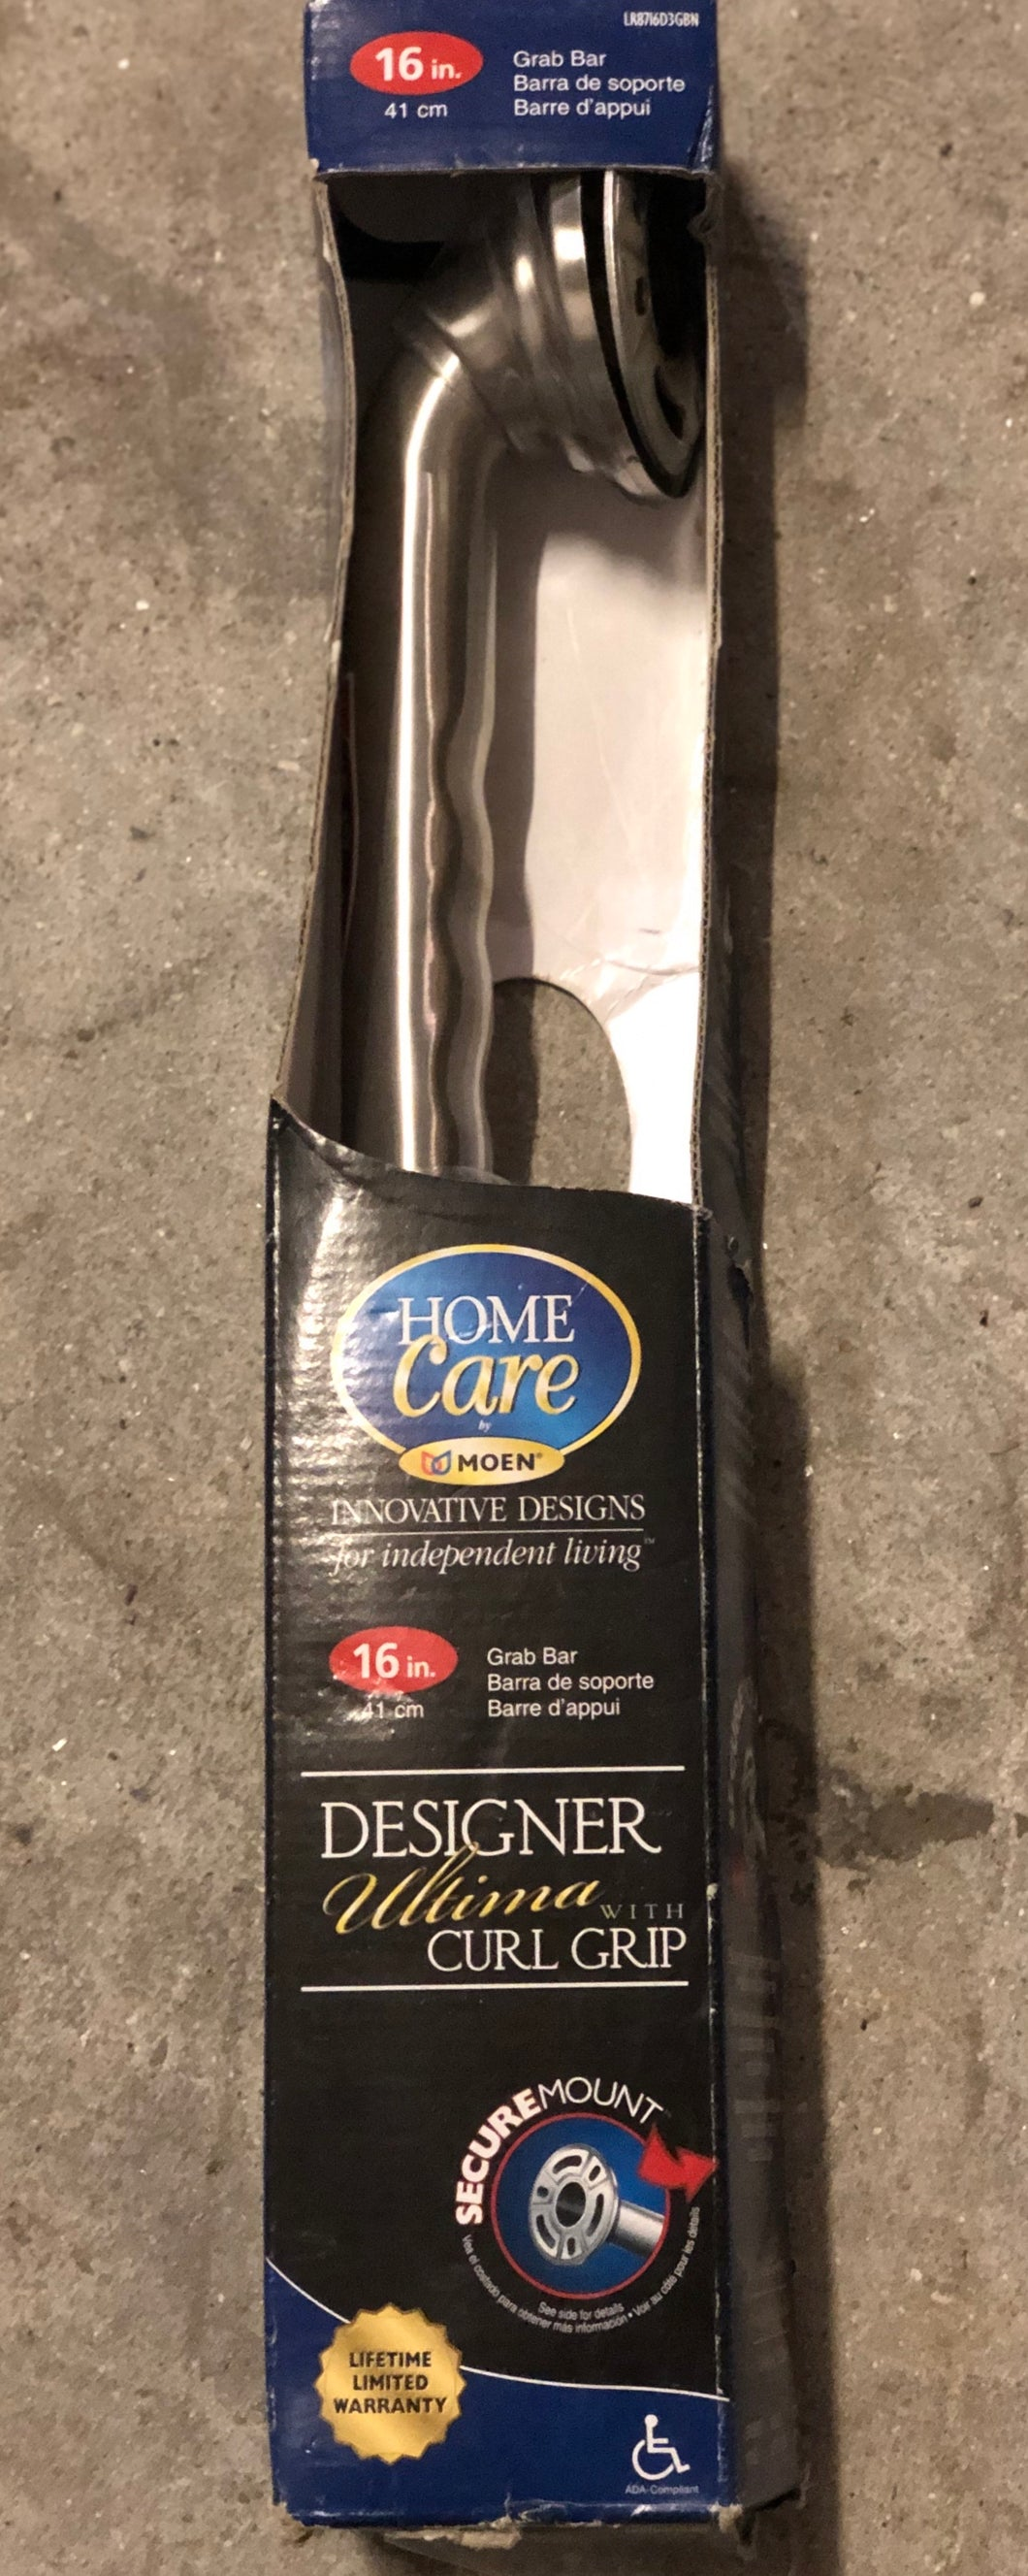 Homecare 16 inch 41 Cm Grab Bar